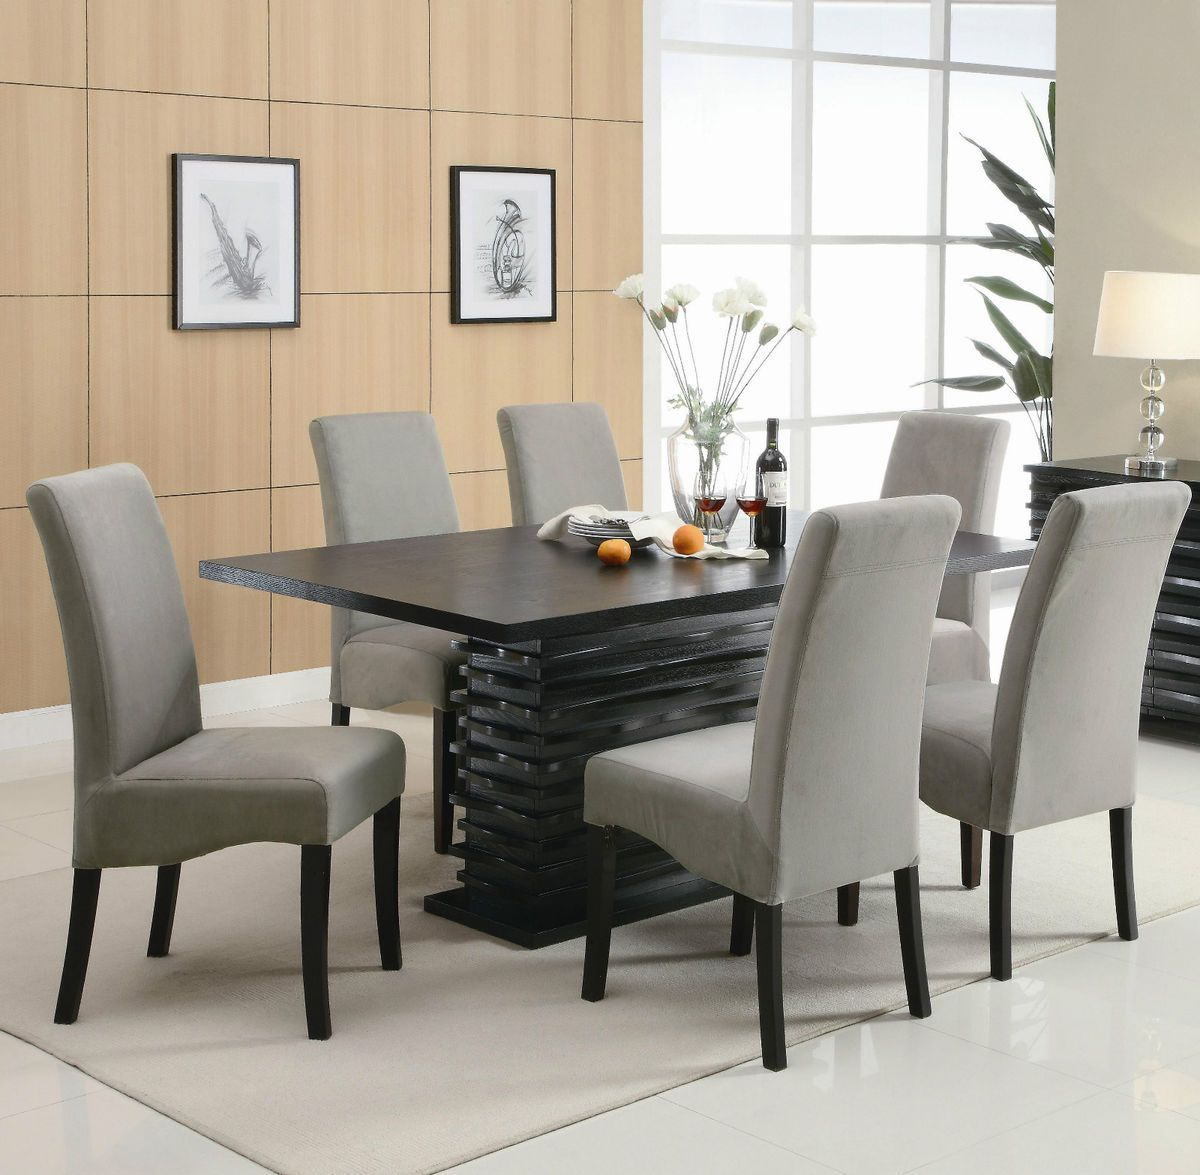 Get Hold Of Some Modern Dining Room Furniture Darbylanefurniture